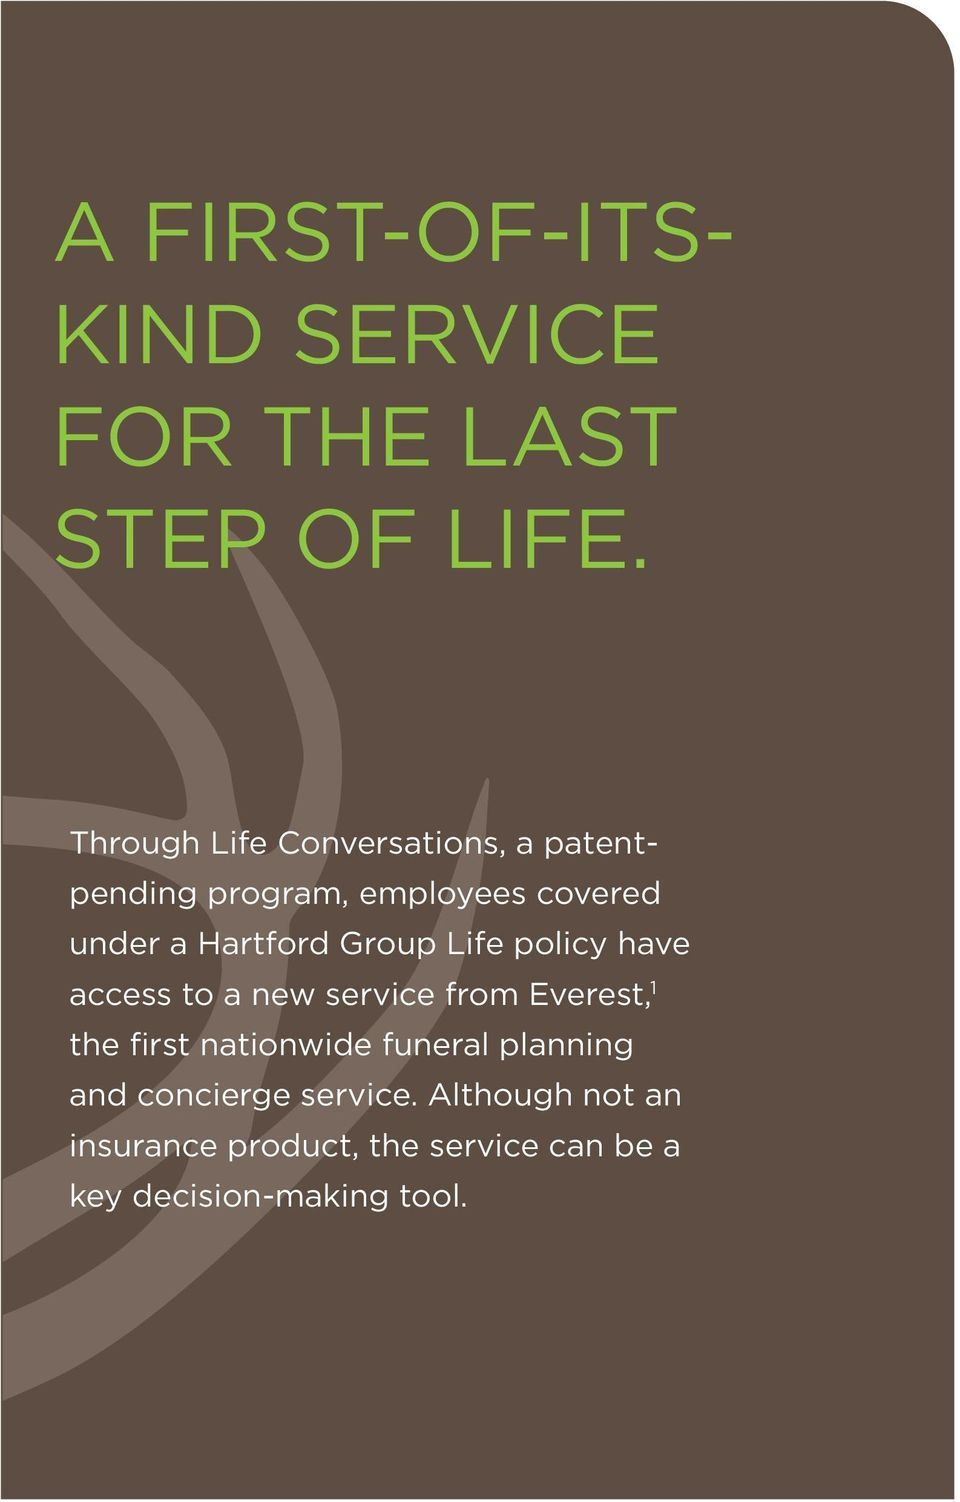 Group Life policy have access to a new service from Everest, 1 the first nationwide